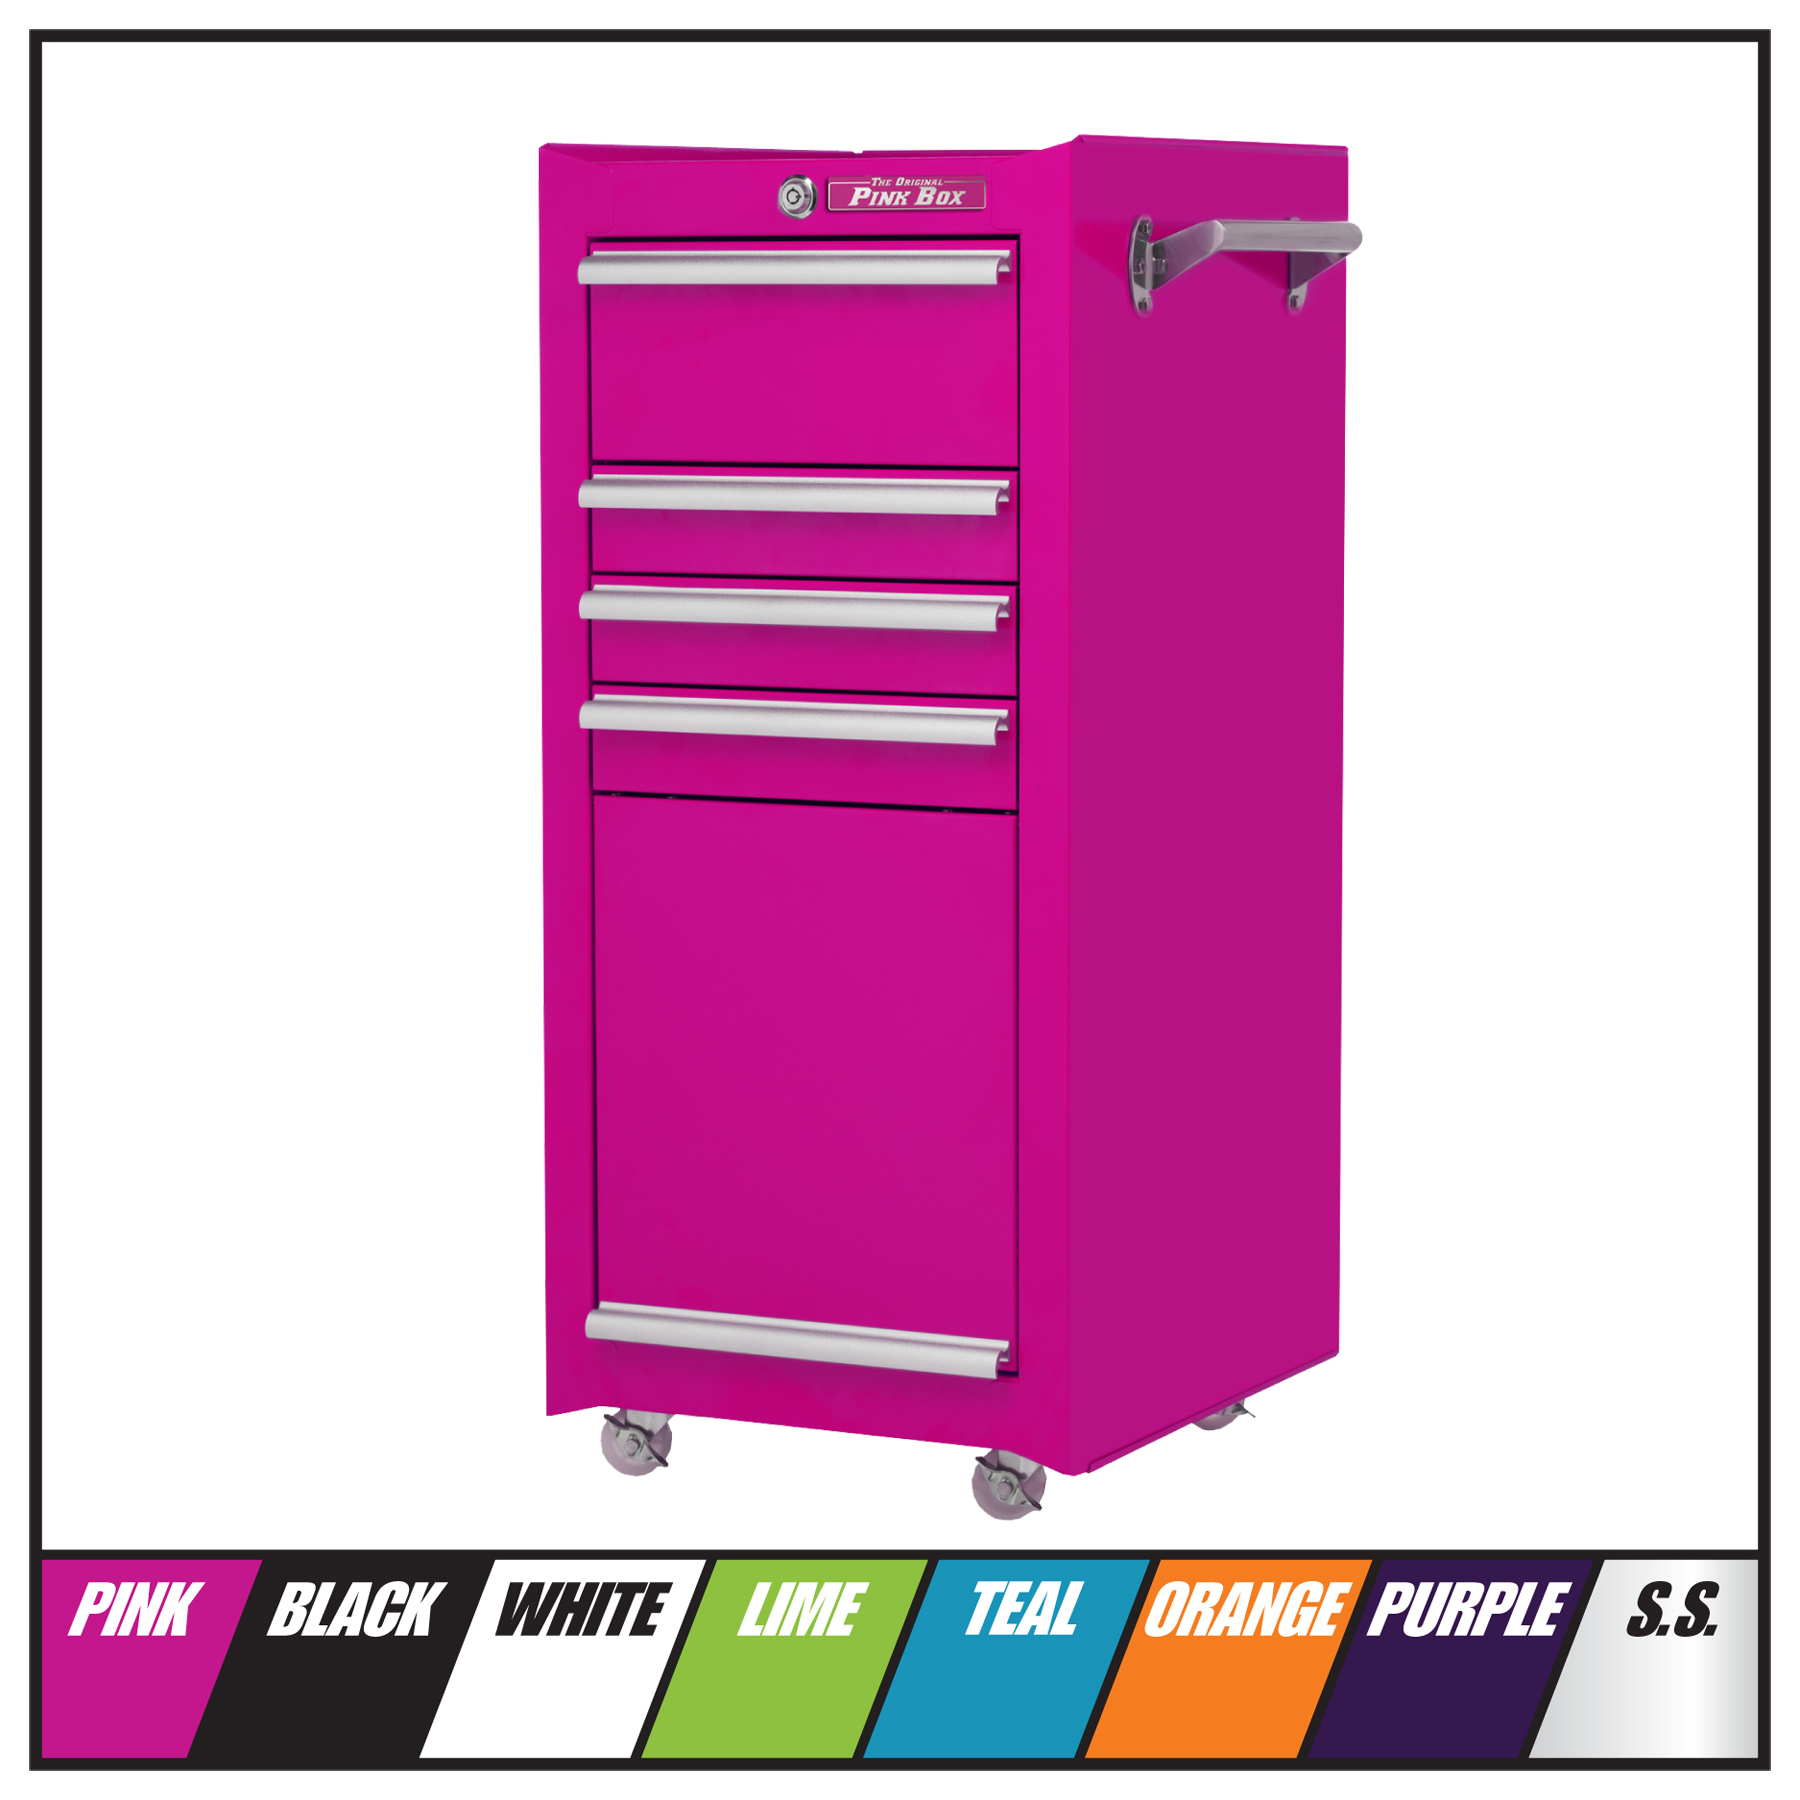 Marvelous Tool Boxes The Original Pink Box Download Free Architecture Designs Grimeyleaguecom